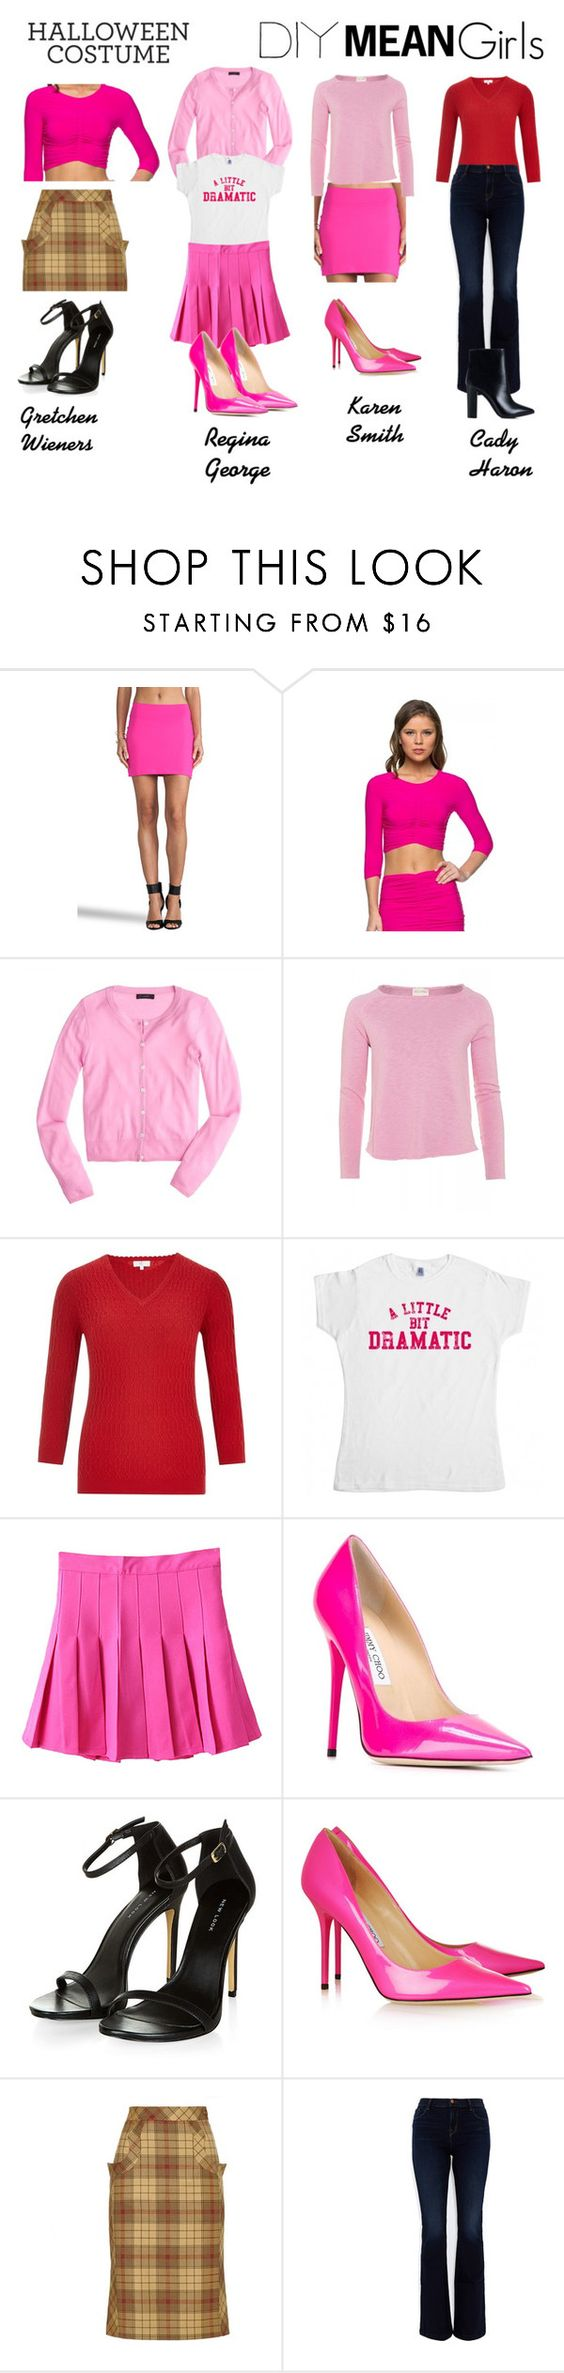 """""""Mean Girls DIY Costume"""" by lavalledanika ❤ liked on Polyvore featuring Susana Monaco, J.Crew, American Vintage, CC, Jimmy Choo, Freddy, J Brand, Nly Shoes and diycostume"""